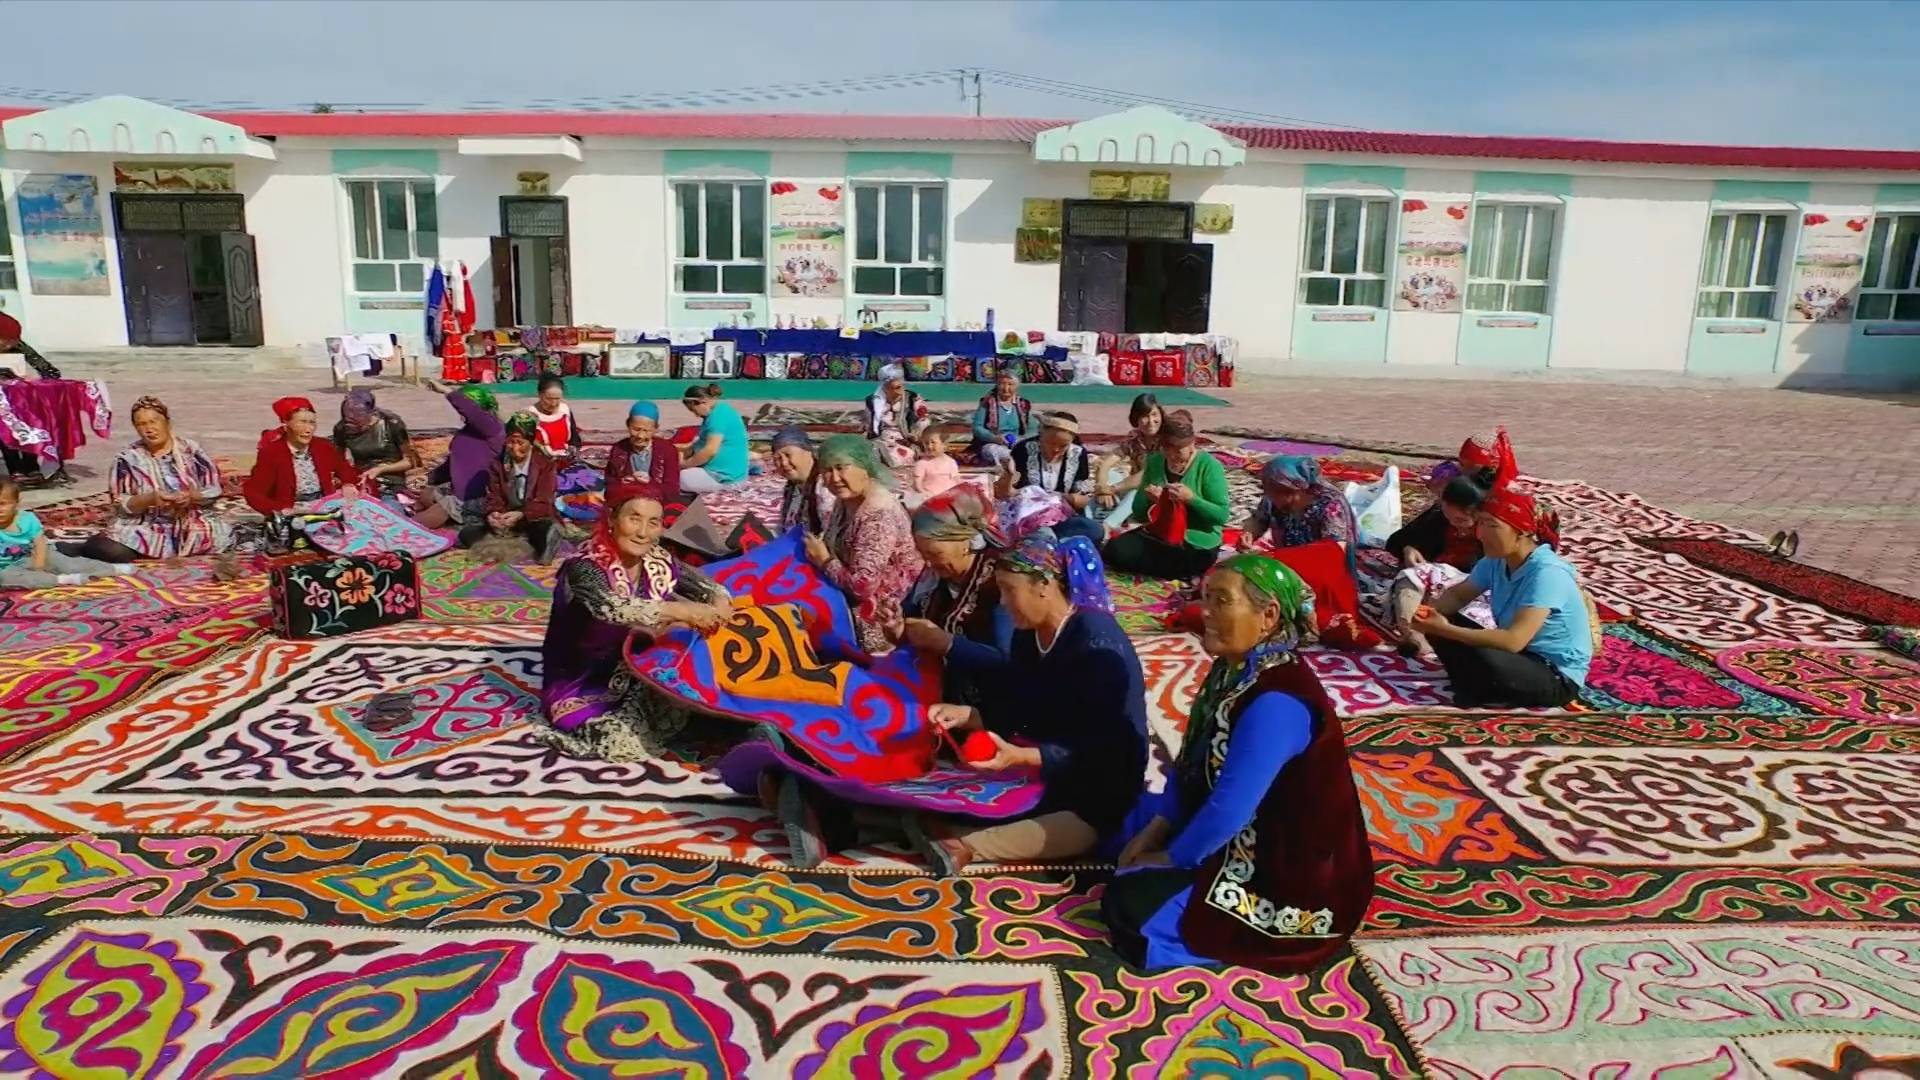 Relocation, employment projects help people out of poverty in China's Xinjiang